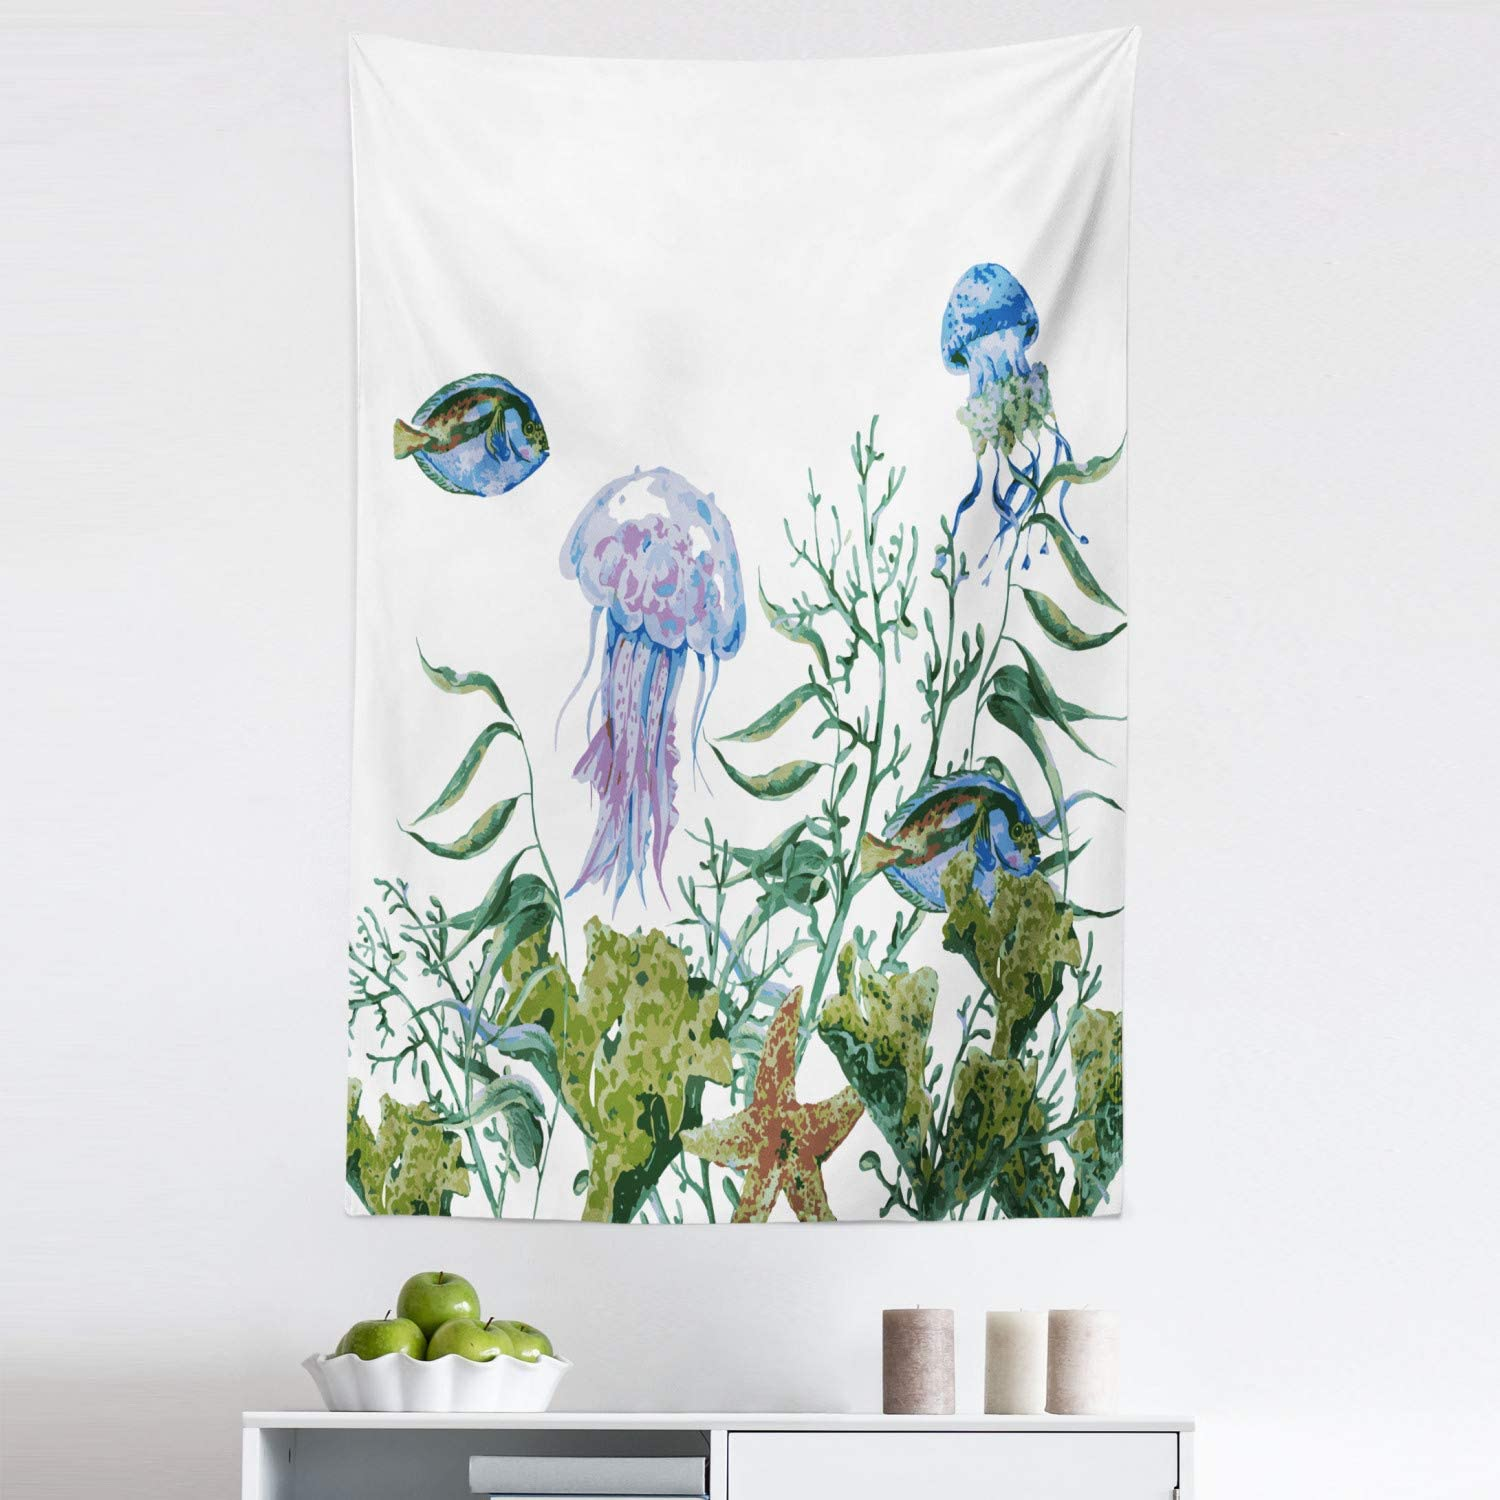 Ambesonne Ocean Tapestry, Watercolor Style Effect Sea Life Pattern with Seaweed Jellyfish and Fish, Fabric Wall Hanging Decor for Bedroom Living Room Dorm, 30